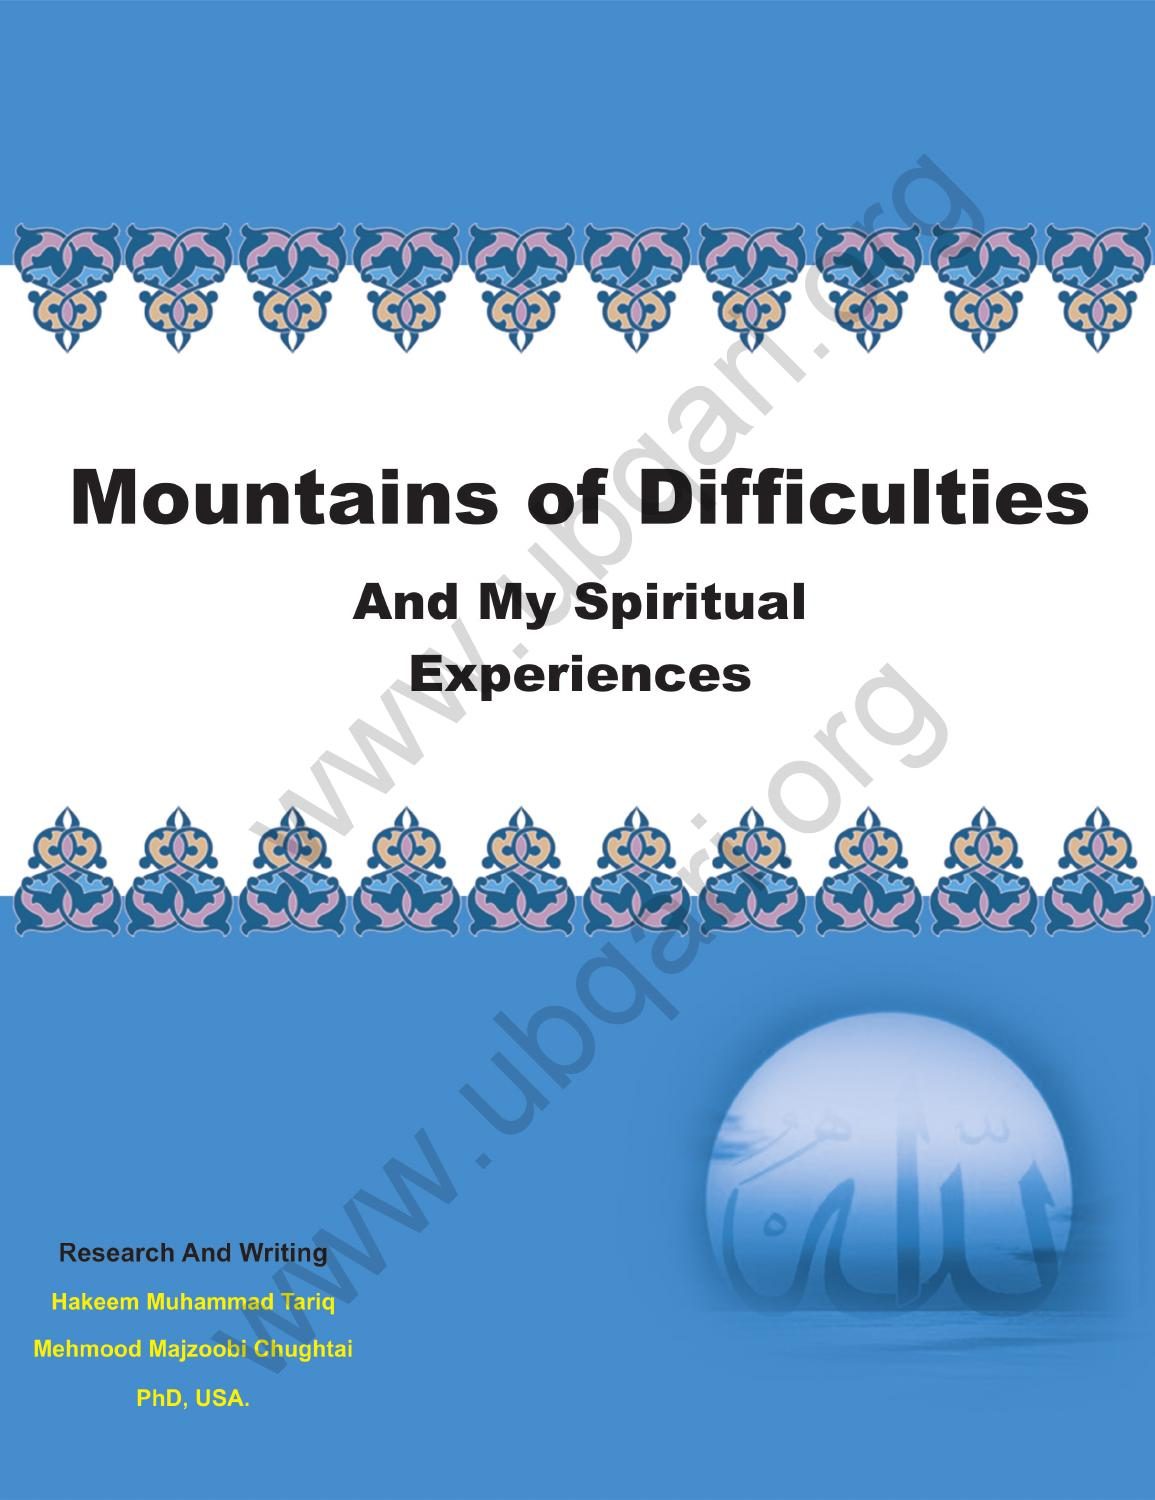 Mountains Of Difficulties And My Spiritual Experiences by